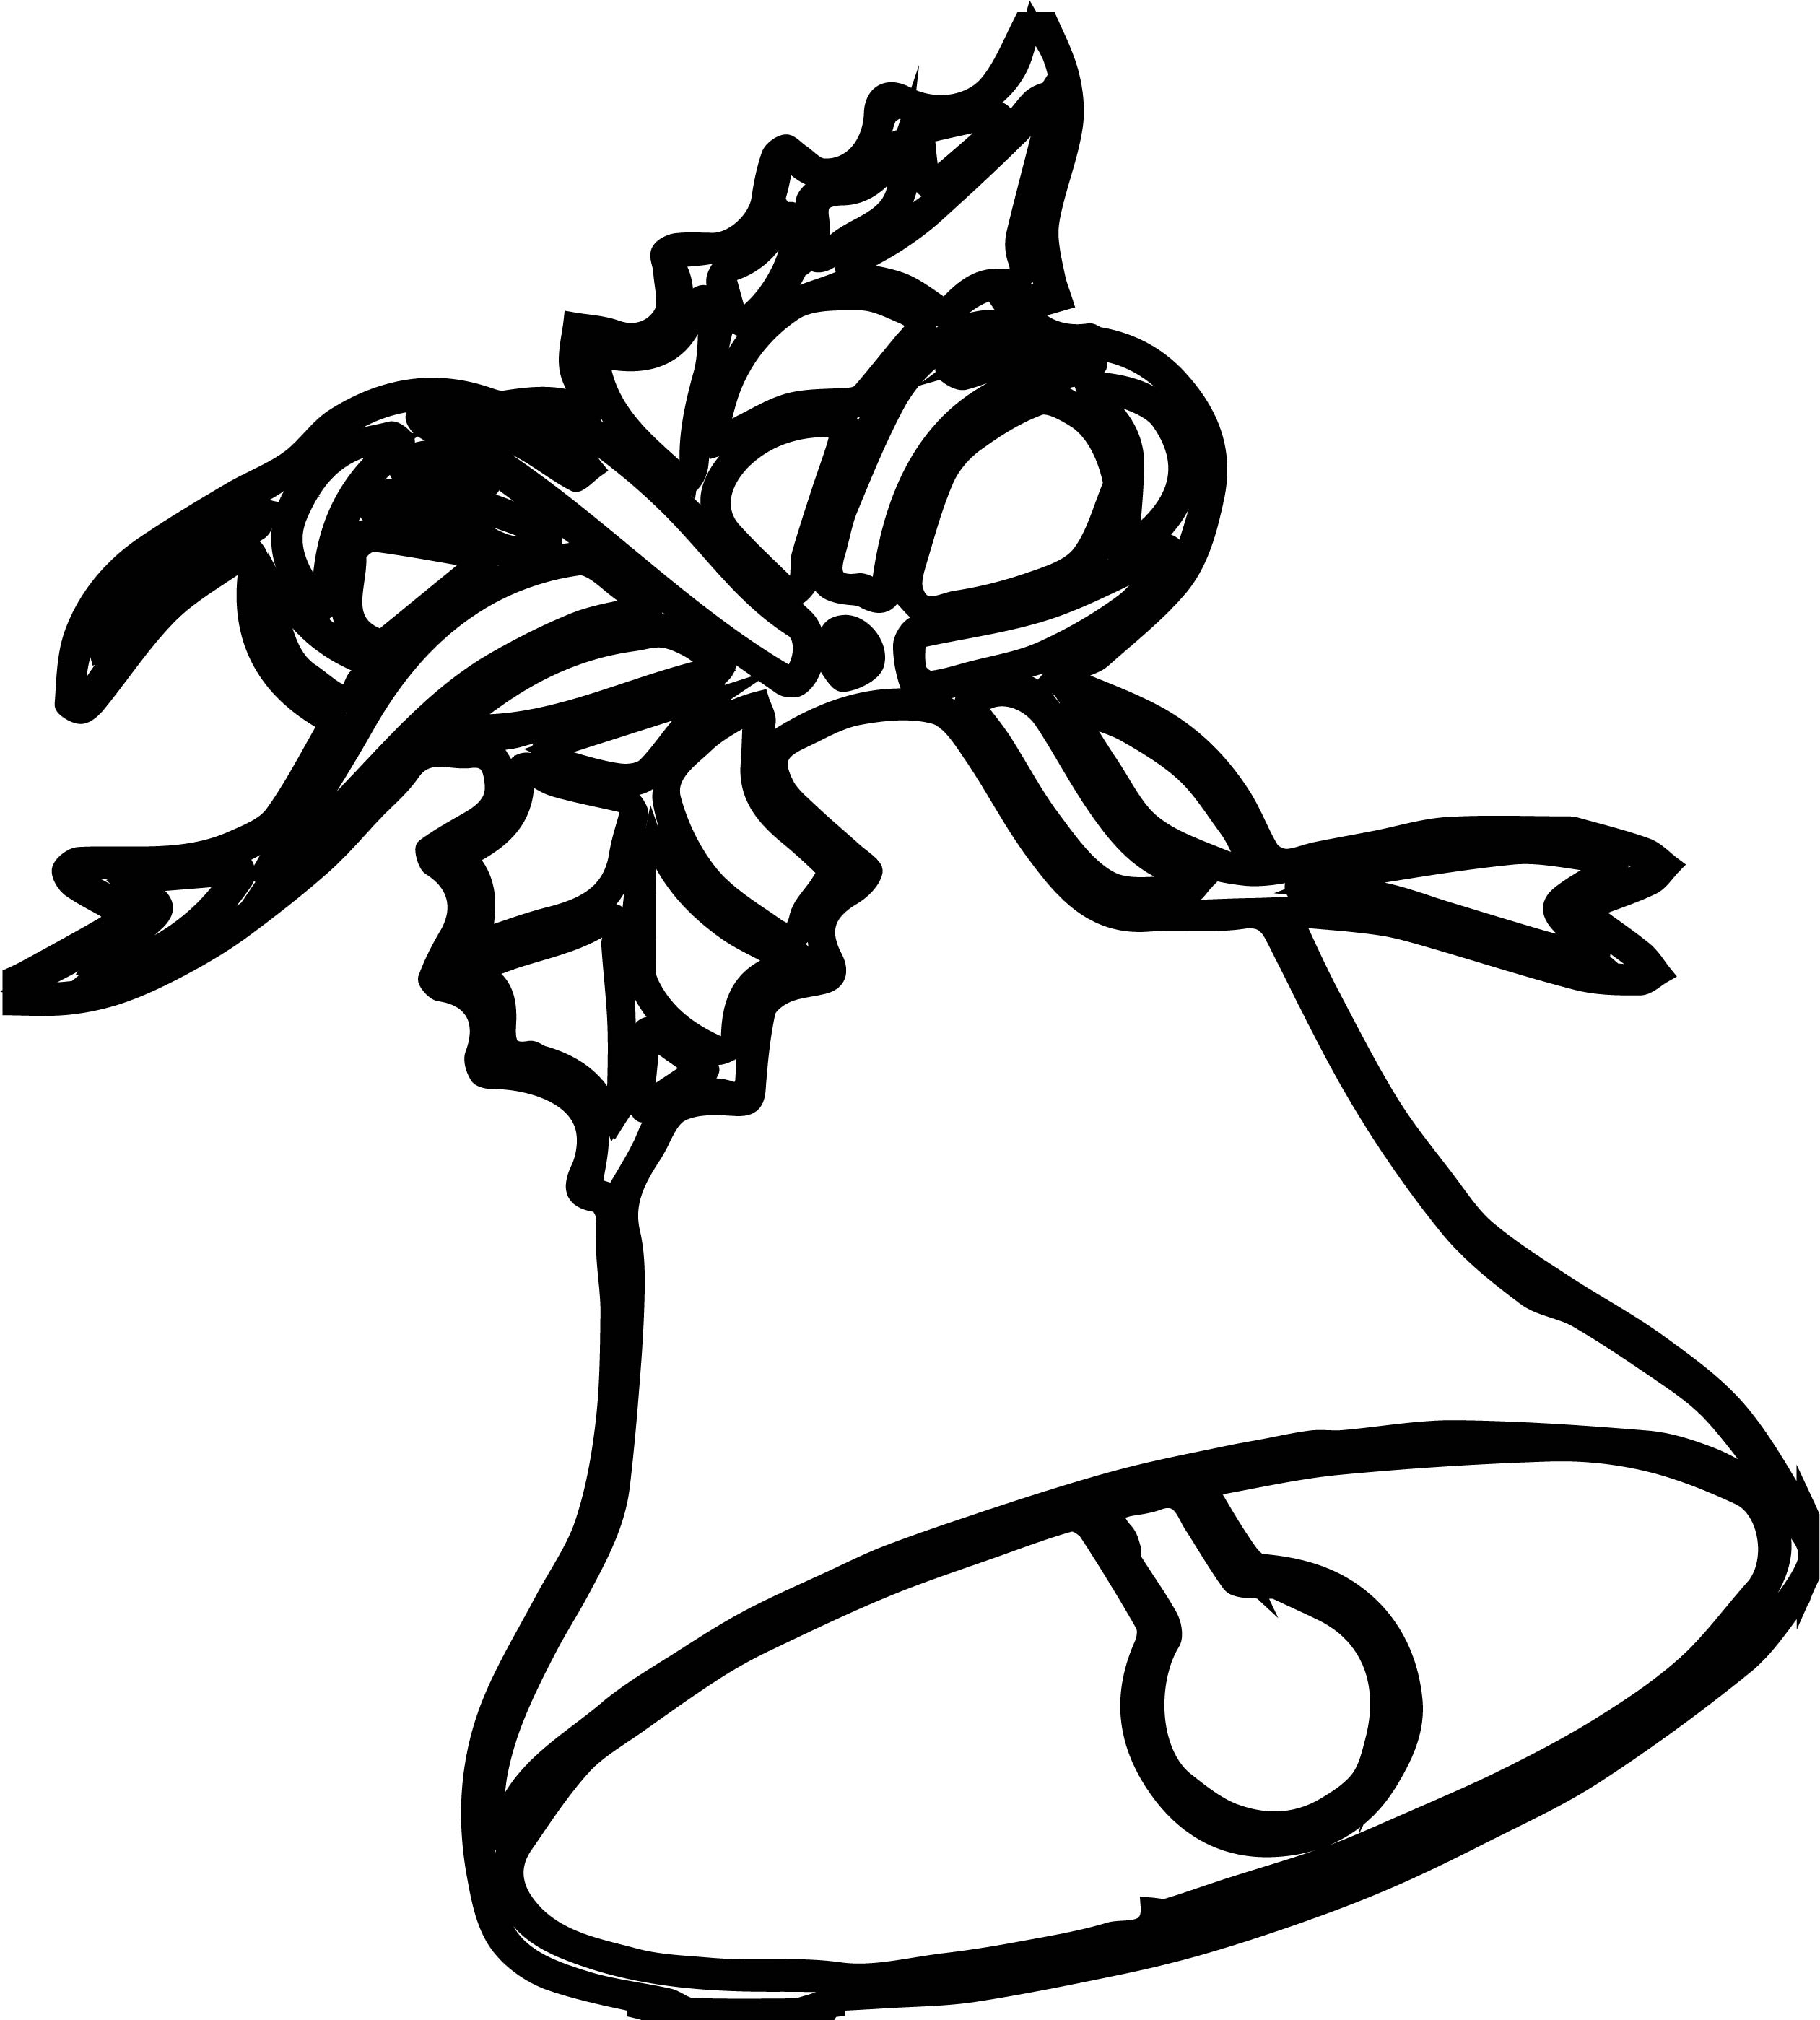 Any Bell Coloring Page | Wecoloringpage.com